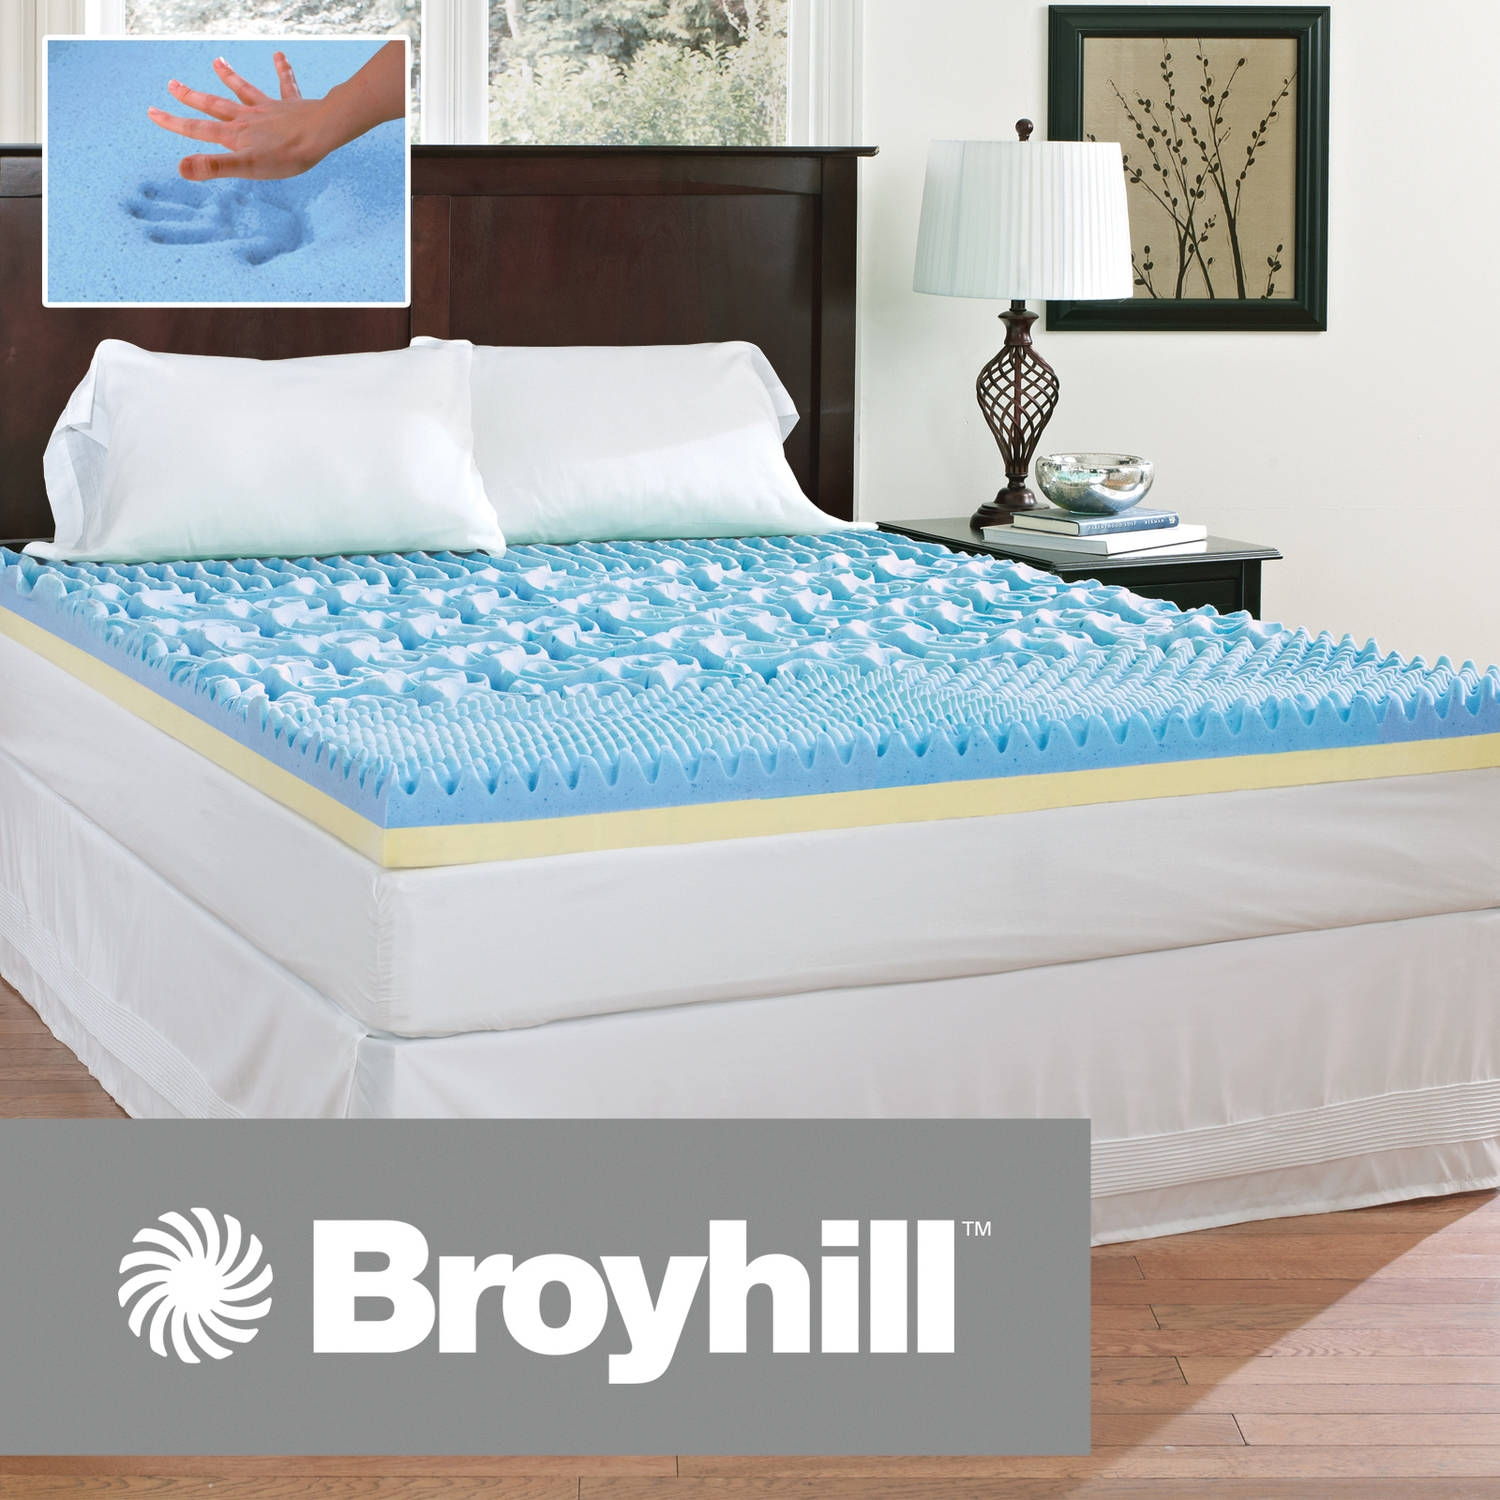 Bed Bath Mattress Cover